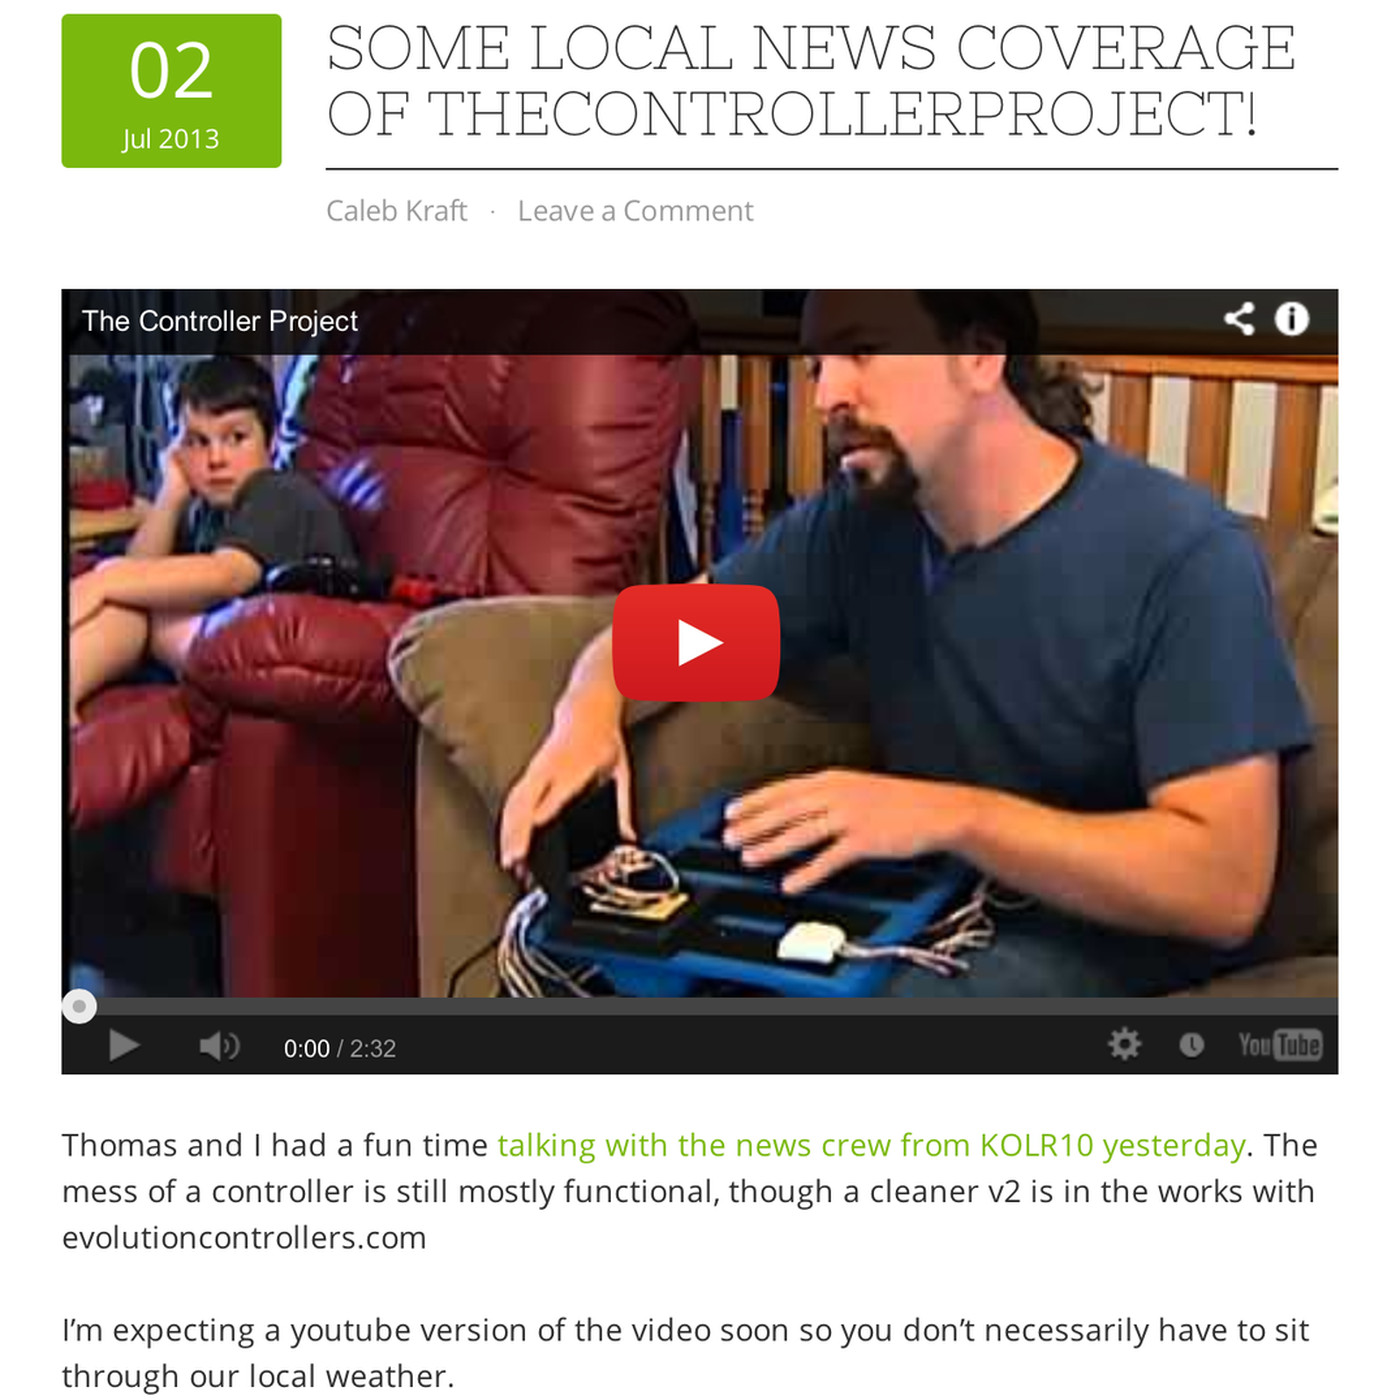 The Controller Project aims to help disabled gamers with